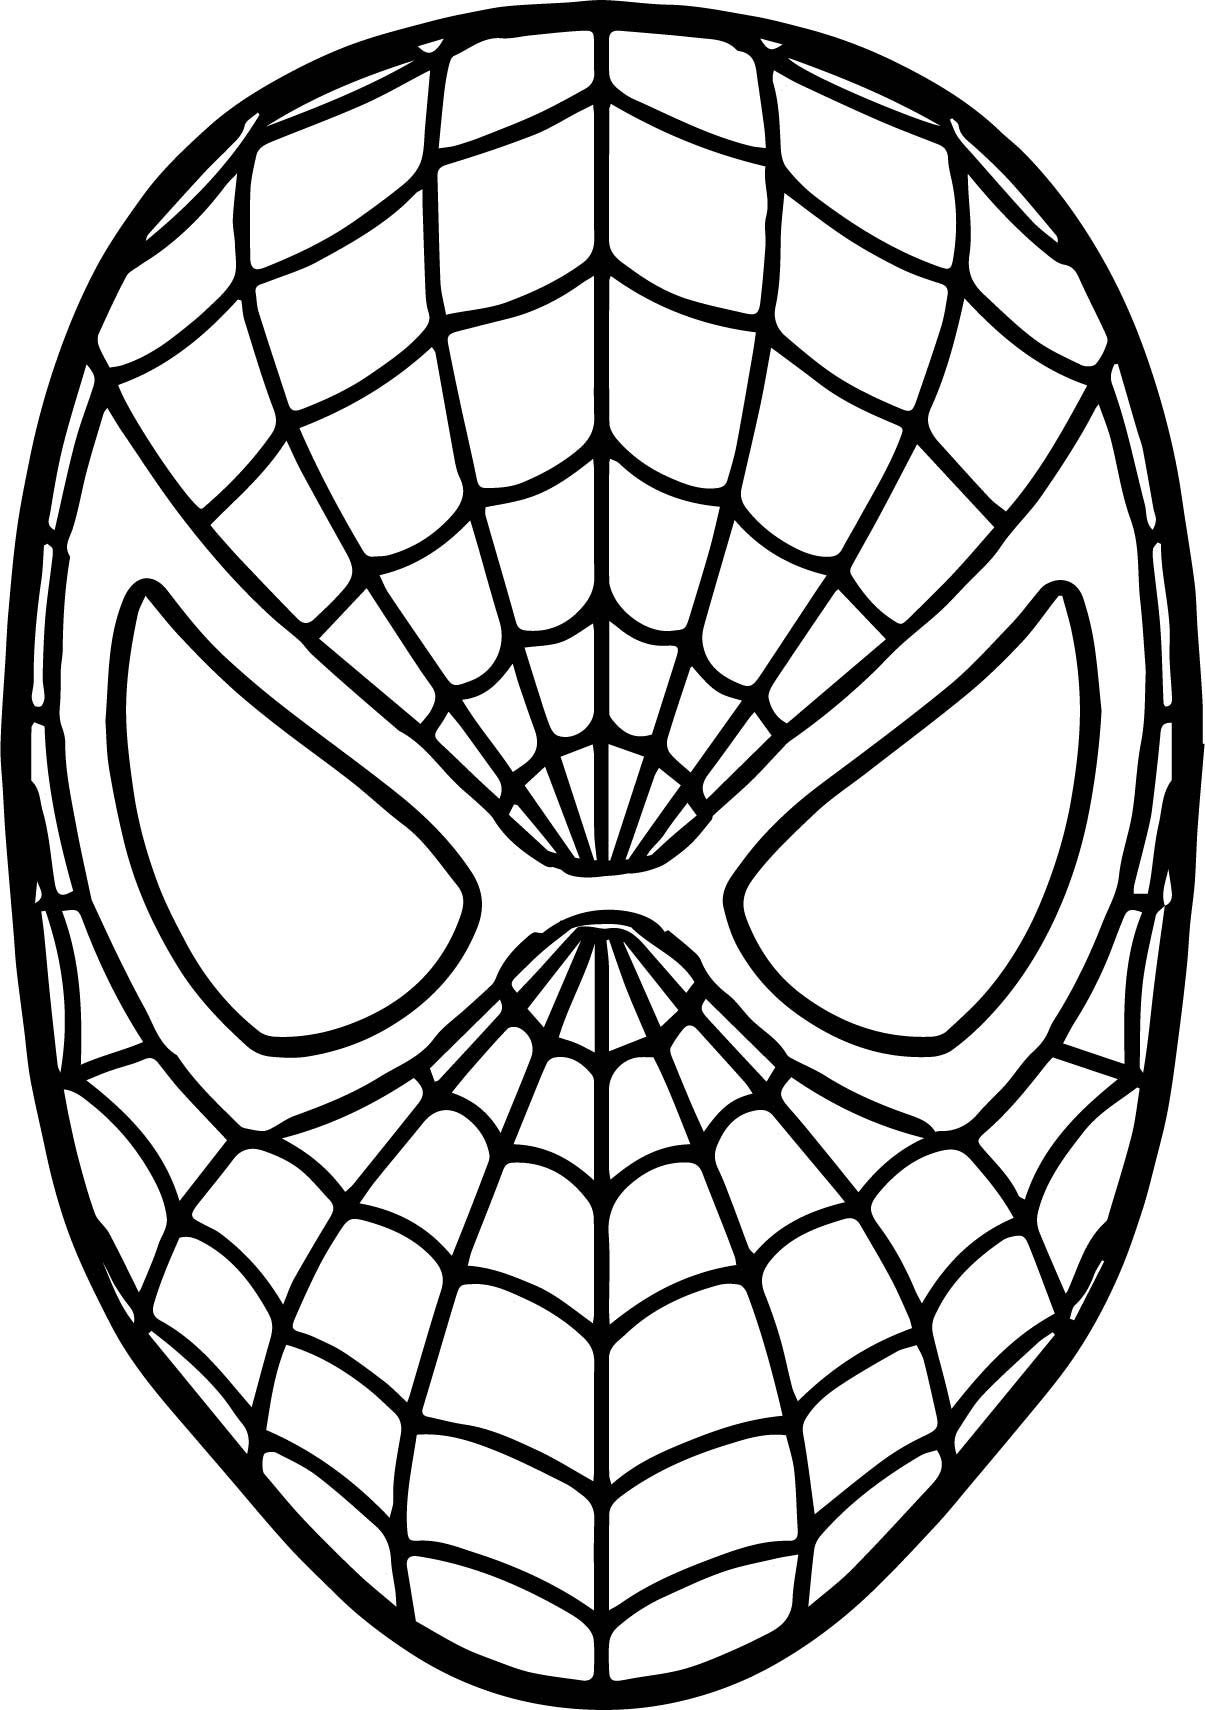 Coloring pages kids: Spiderman Mask Coloring Sheet